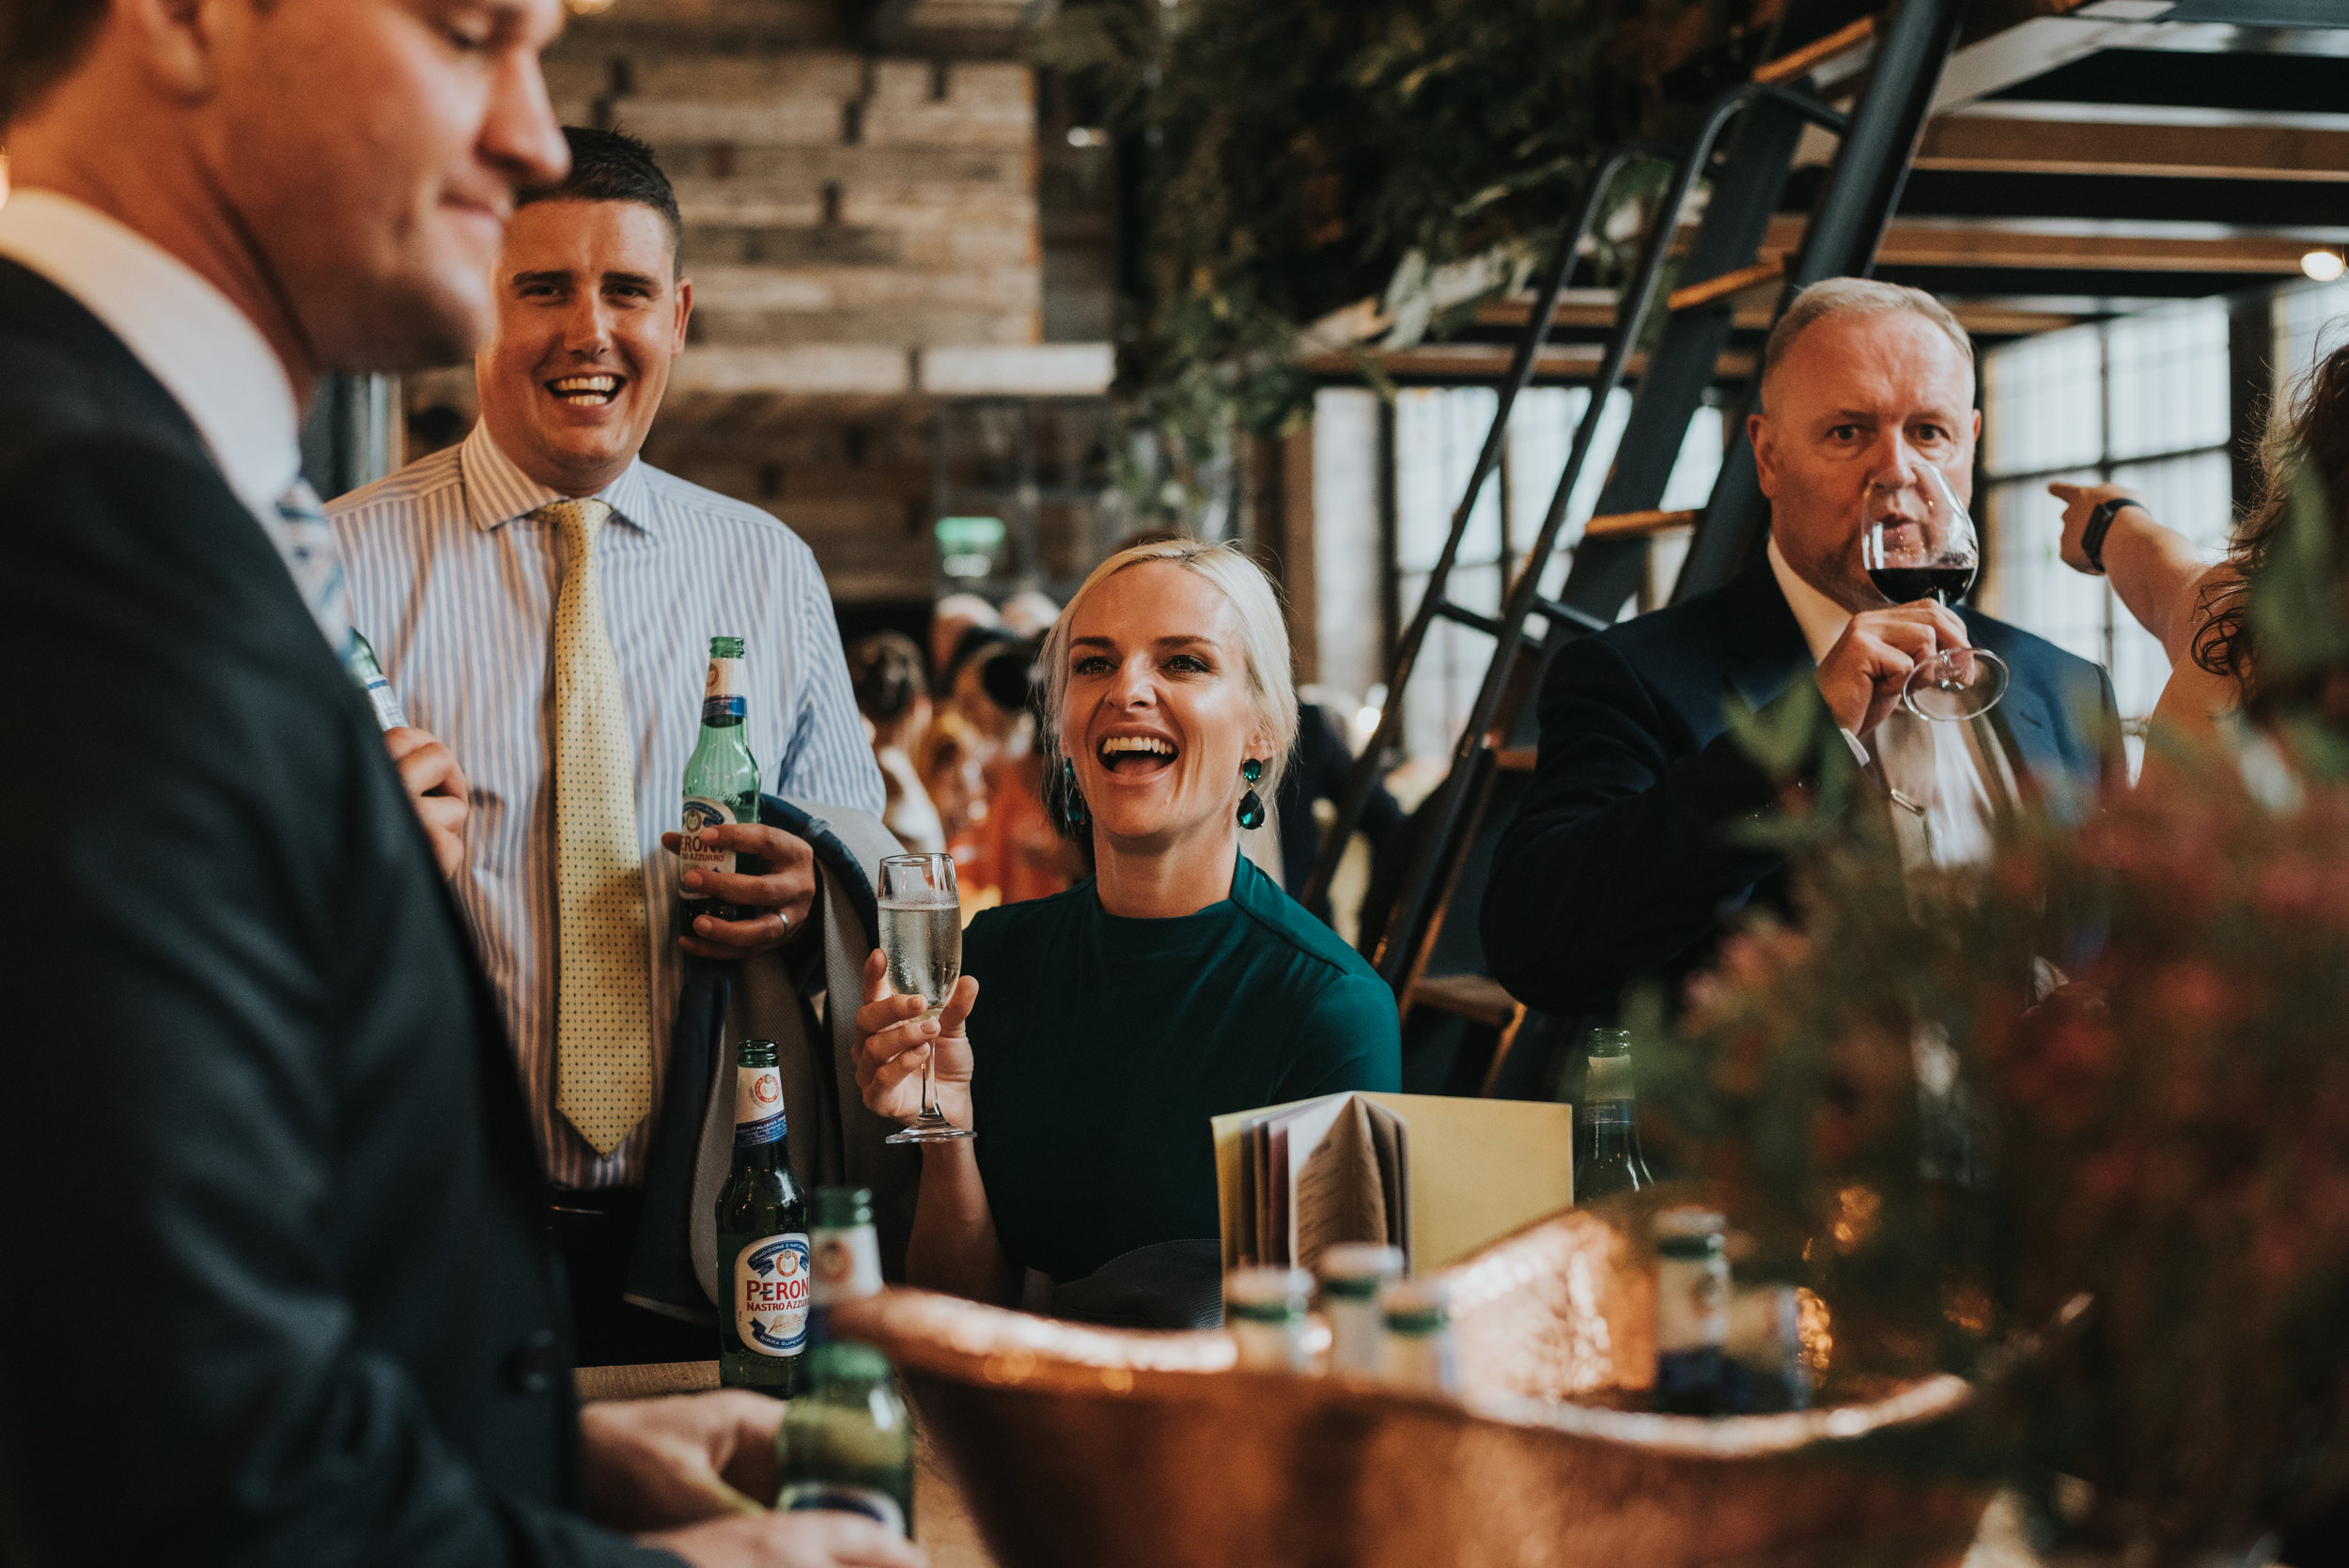 Wedding guests have a drink and laugh together in Albert Schloss.